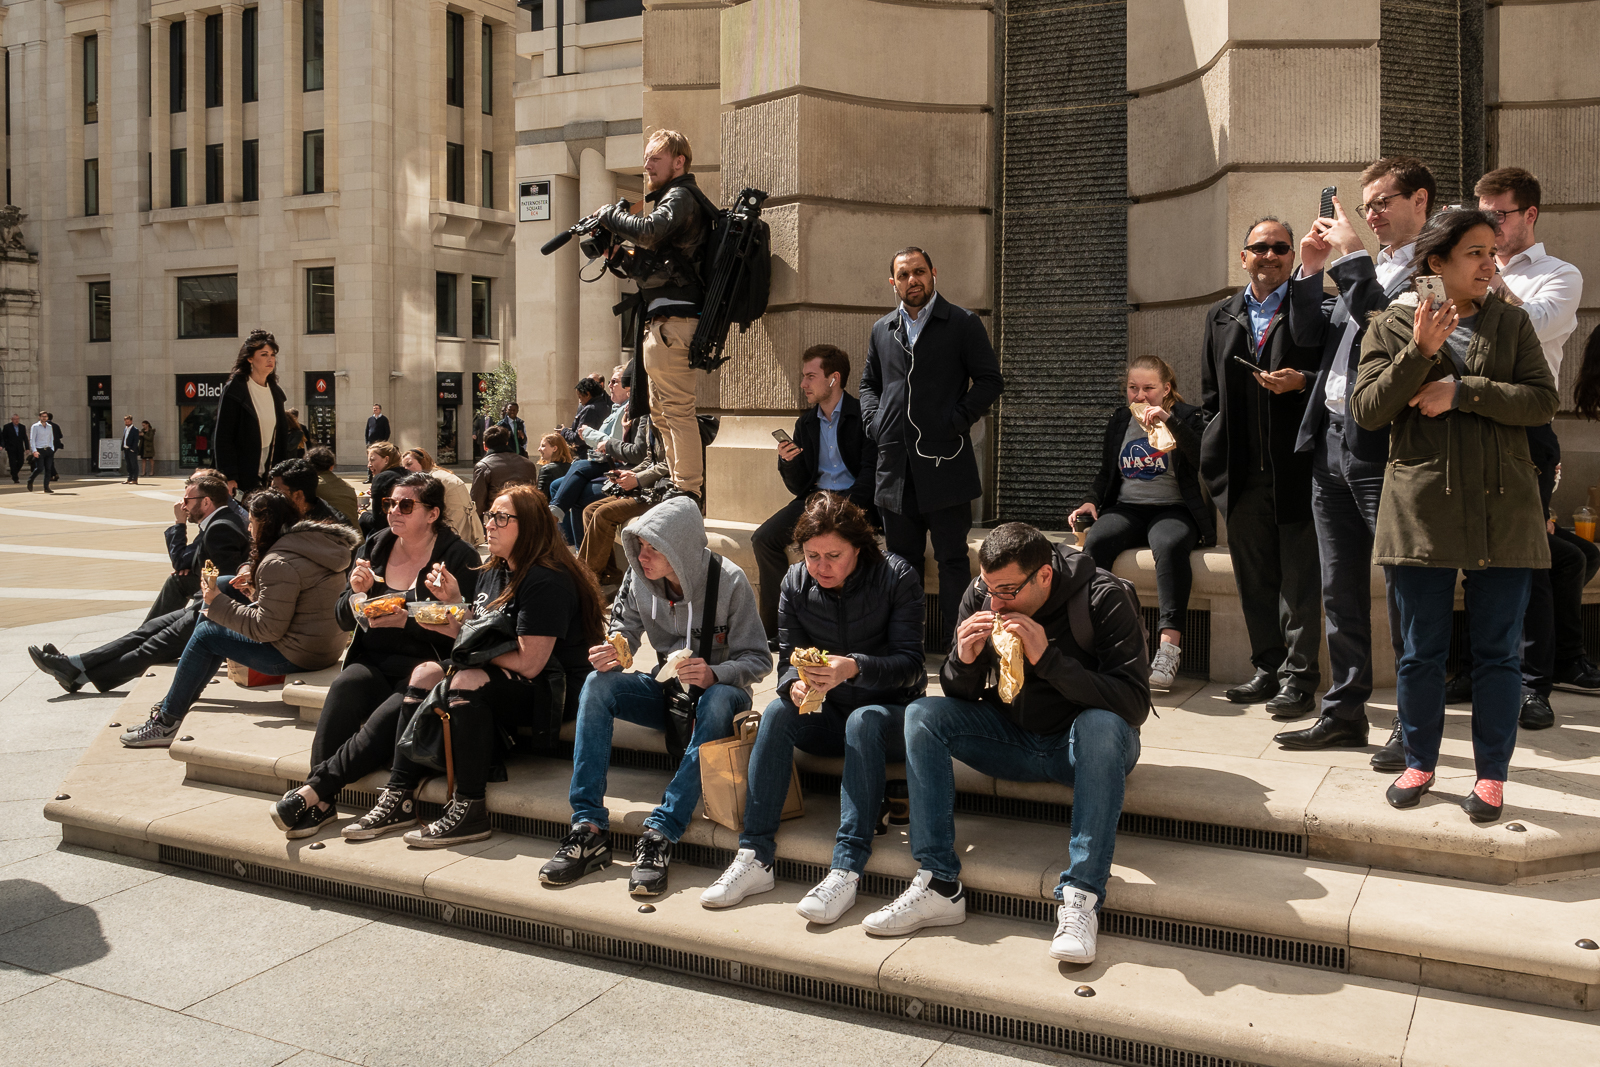 Paternoster Sq locals and tourists looking on